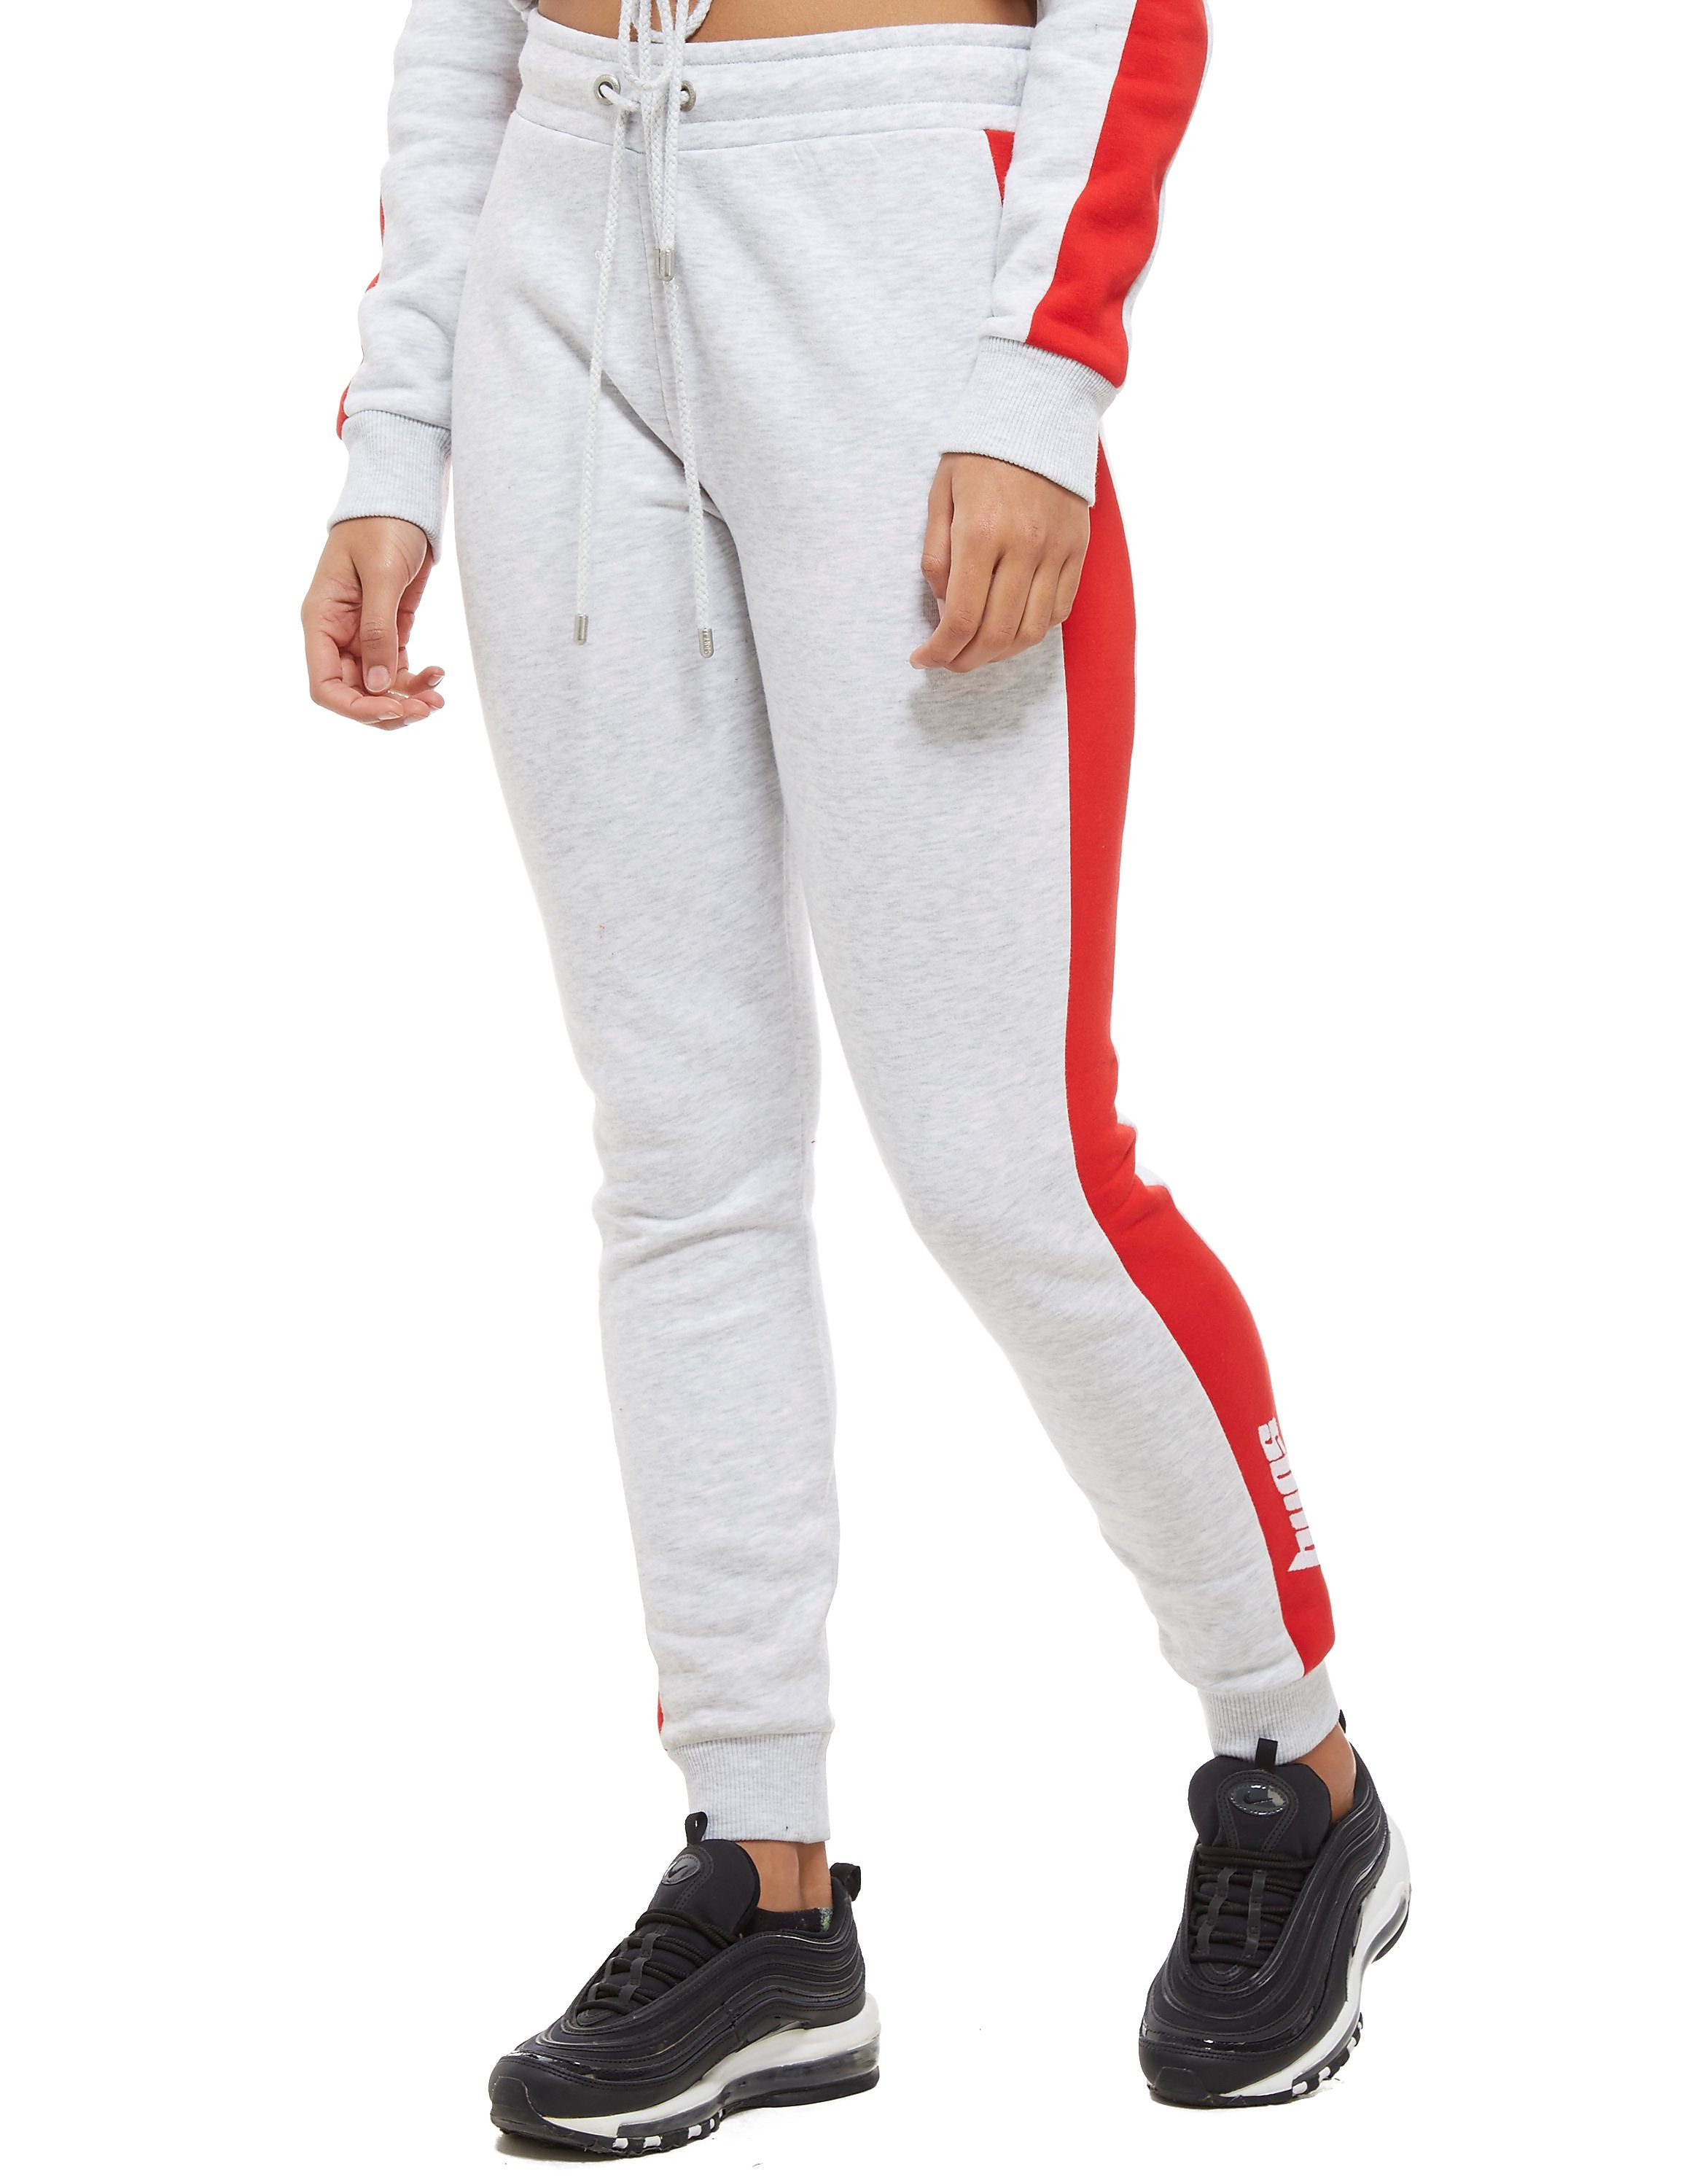 Supply & Demand Contrast Joggers - Only at JD - gris/rouge, gris/rouge